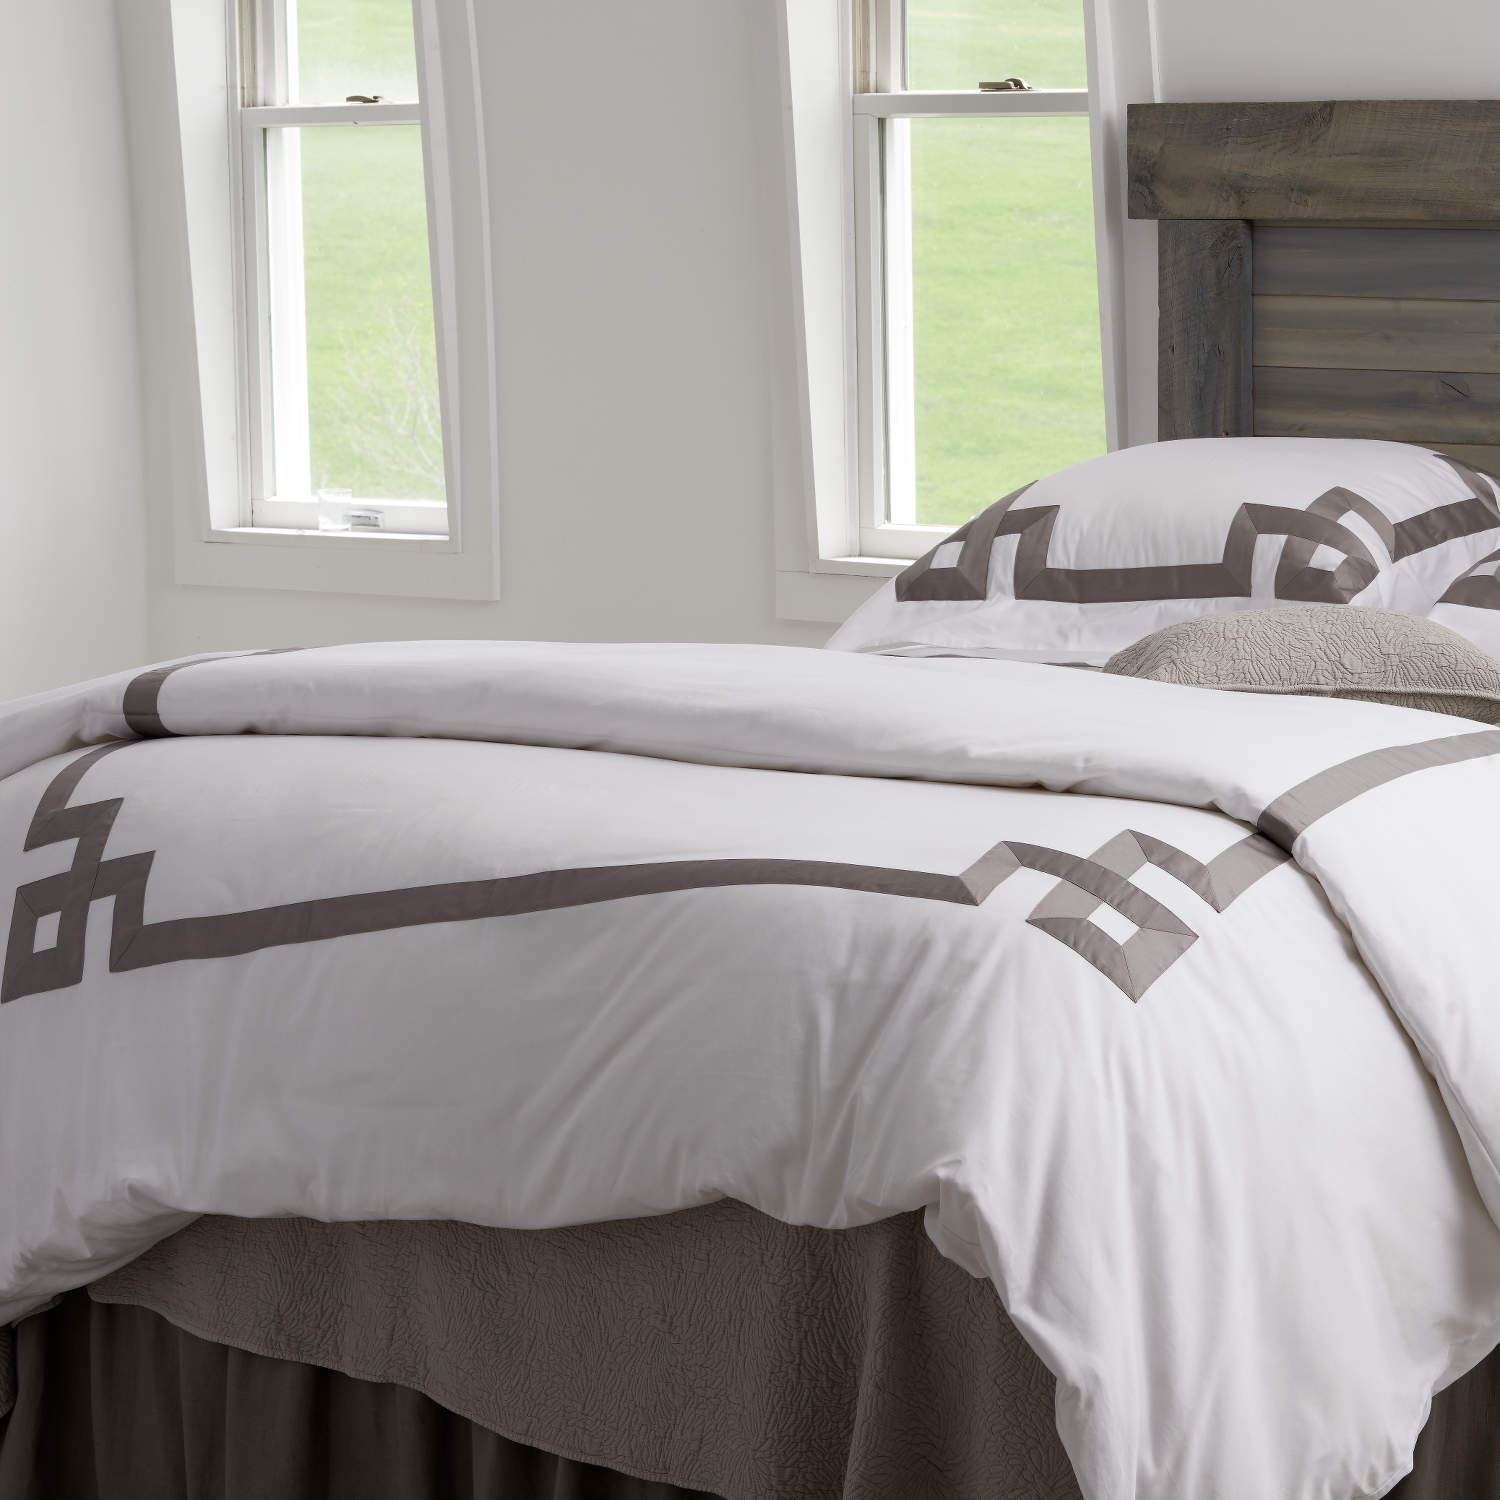 Traditions Linens Bedding Milano Collection